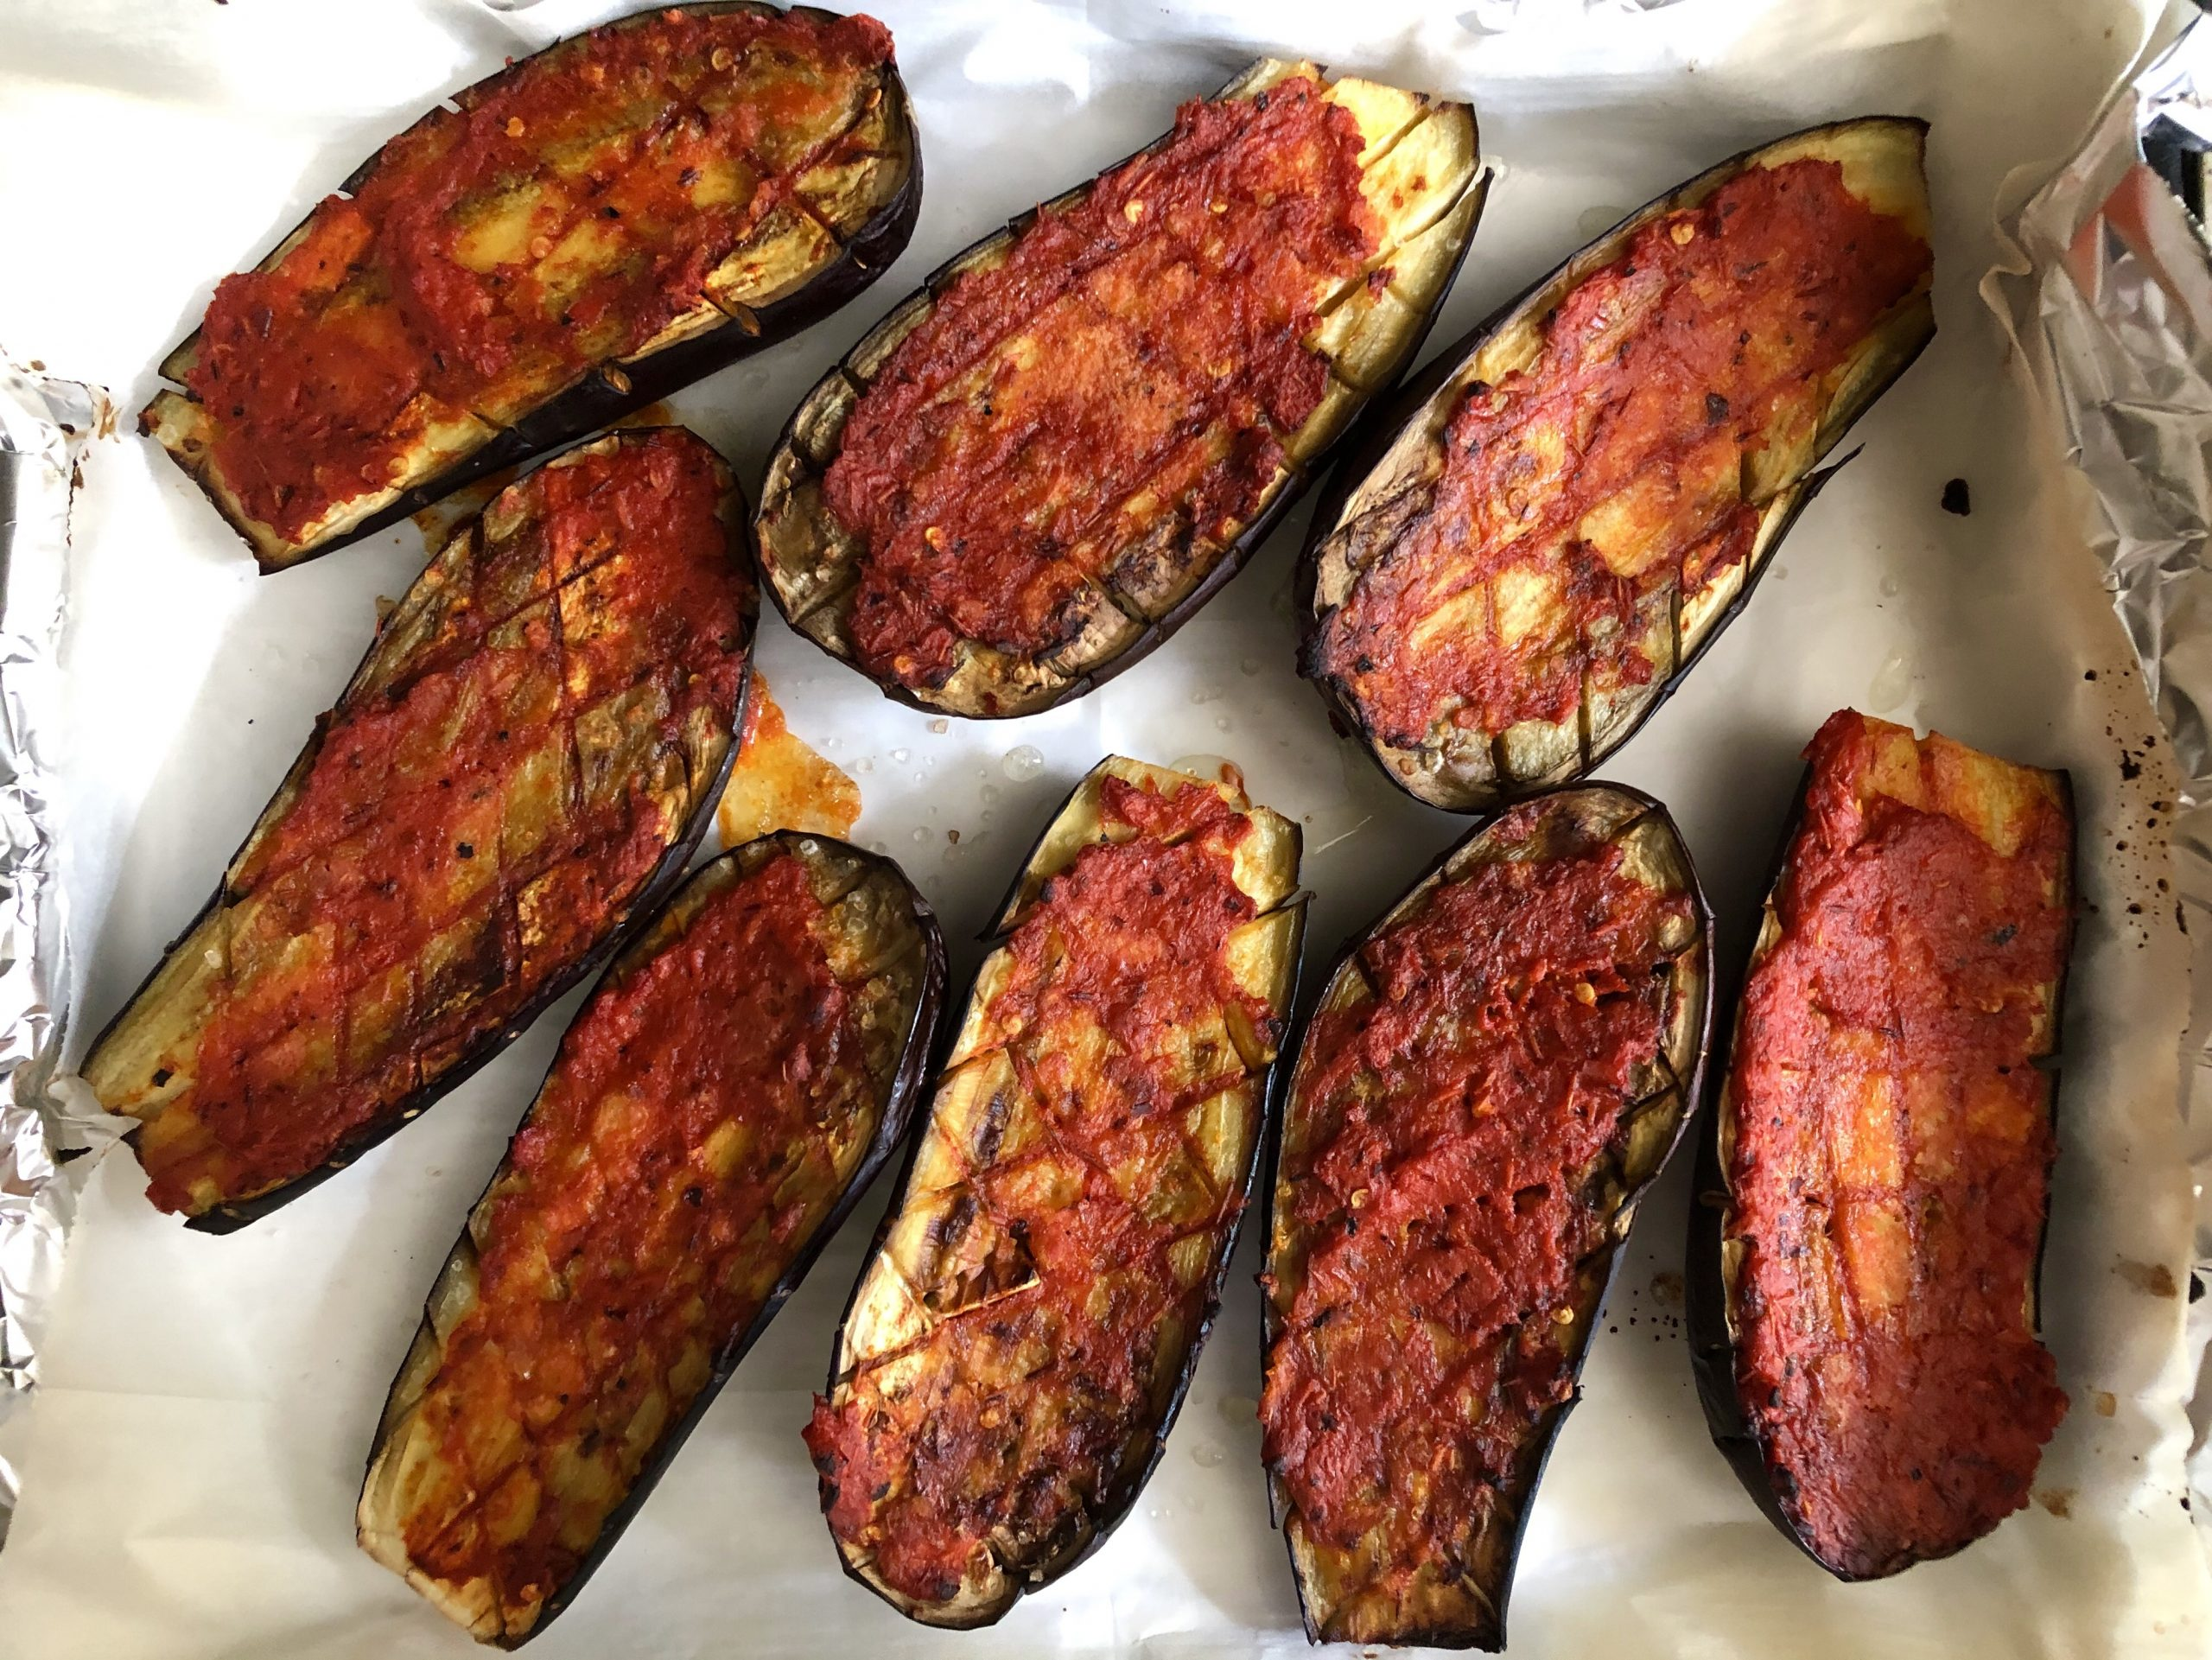 Roasted eggplants with red-pepper glaze